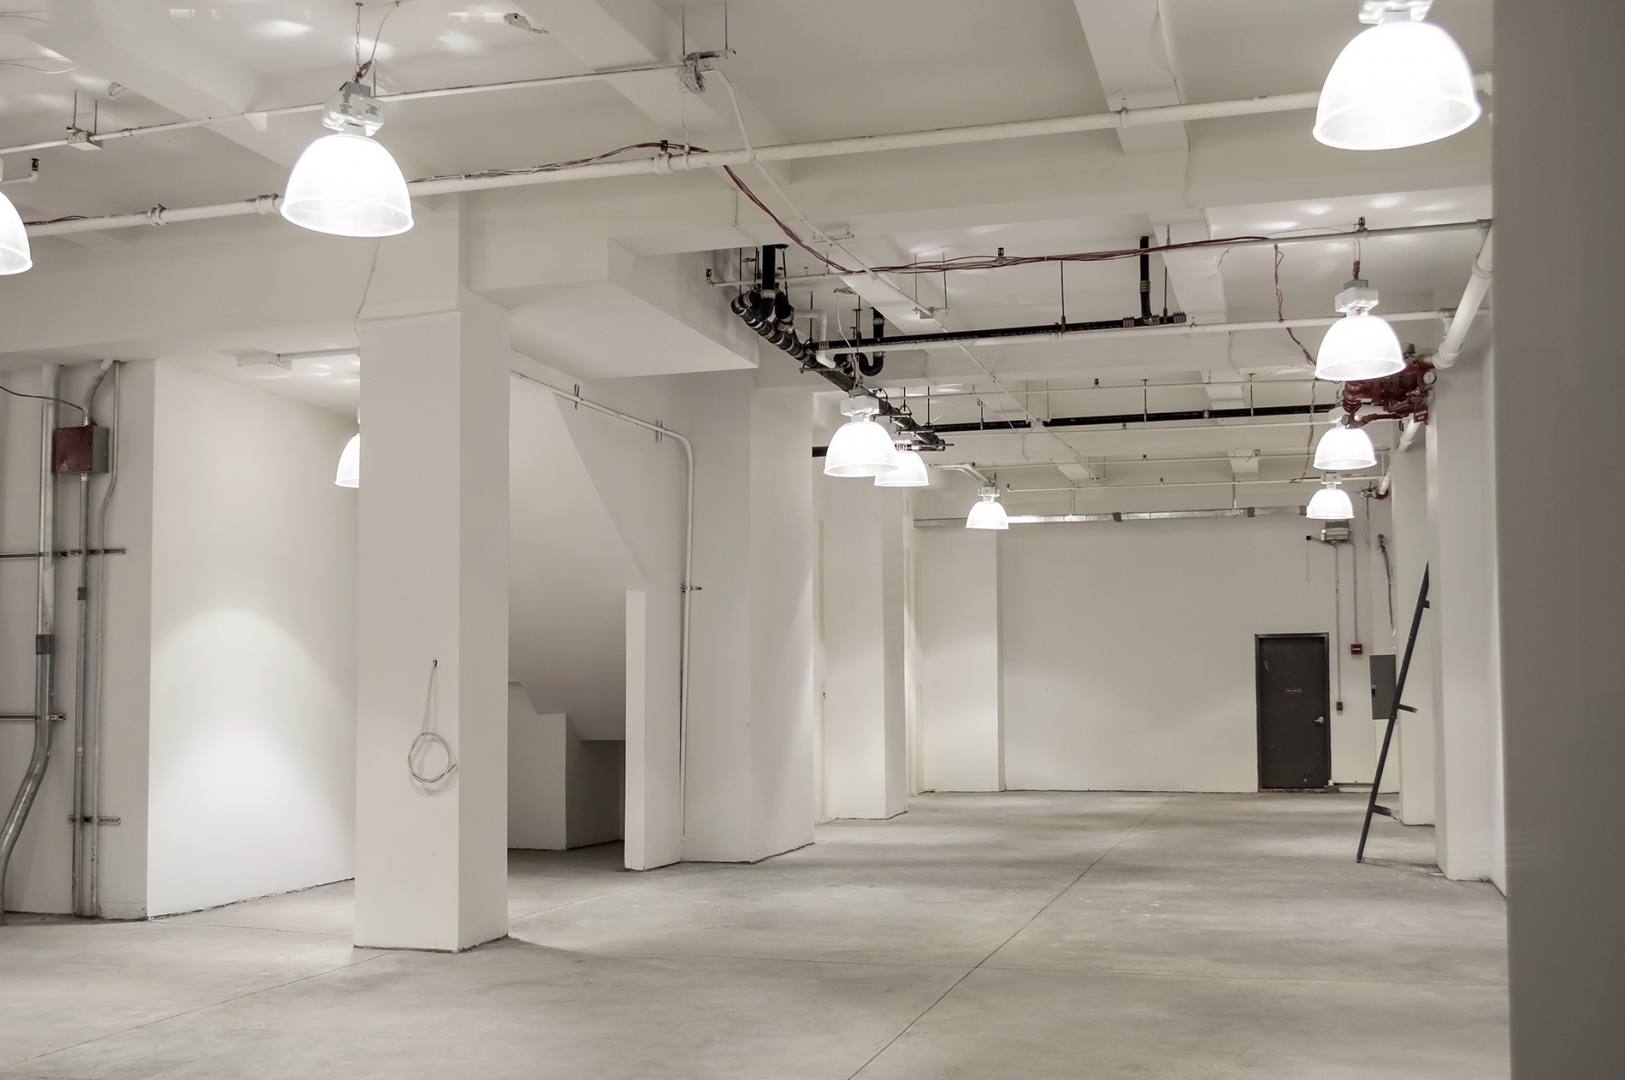 vacant retail space ready for pop-up store